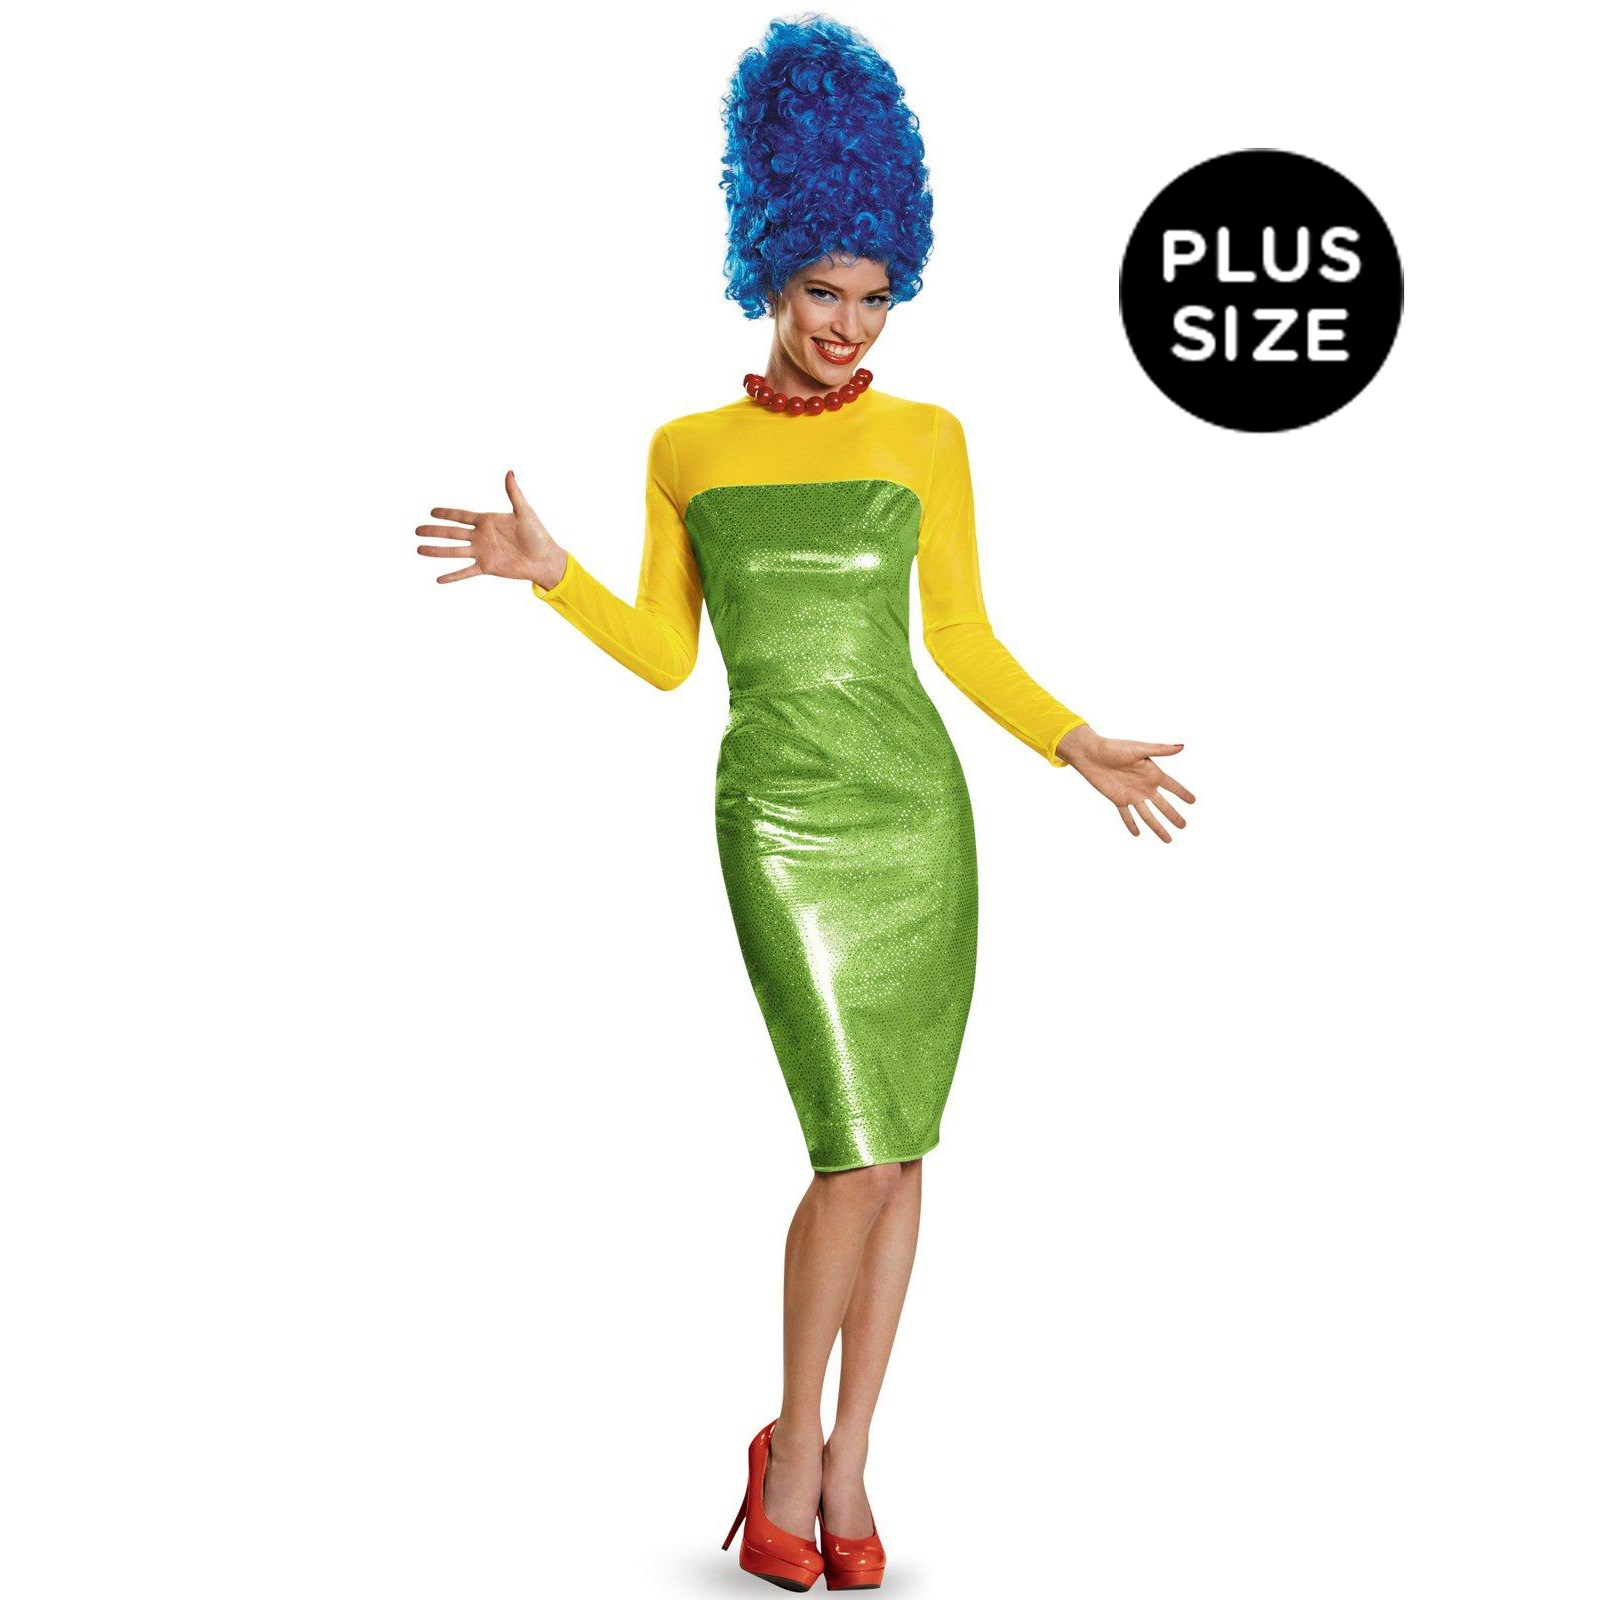 The Simpsons: Deluxe Plus Size Marge Costume For Women ...